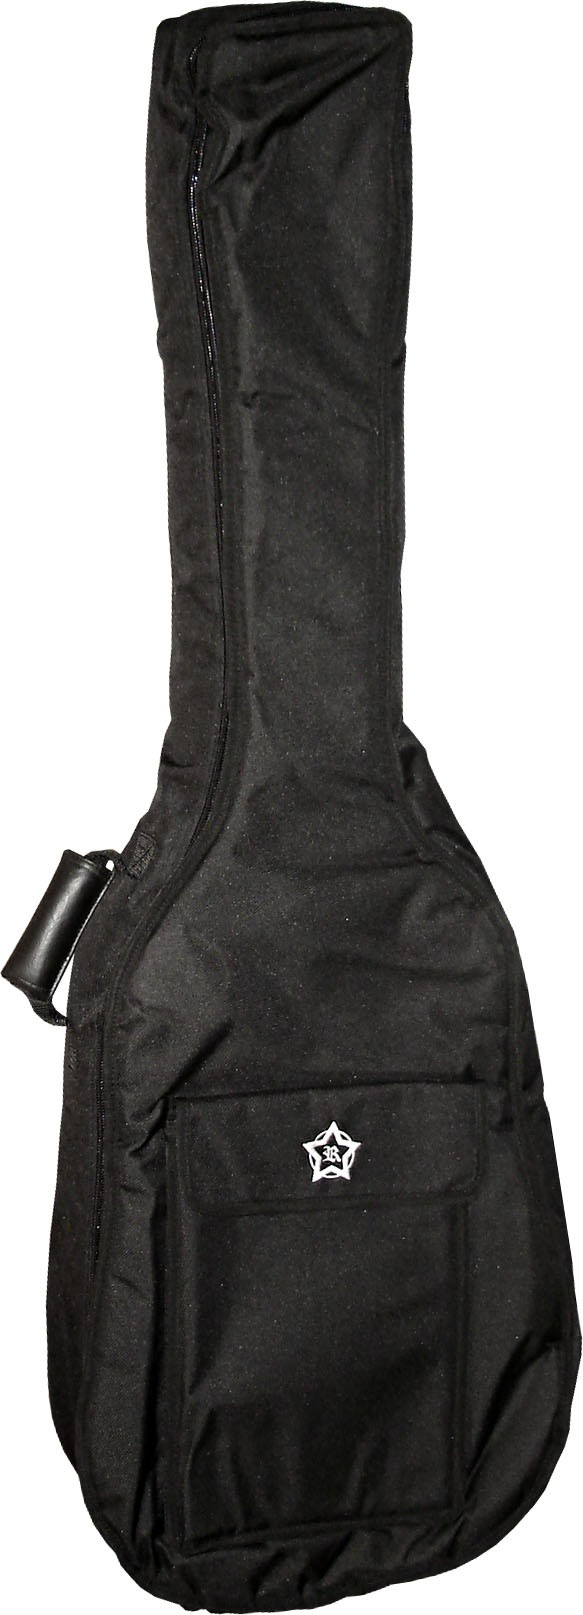 Rosetti Acoustic Bass Guitar Gigbag - Black